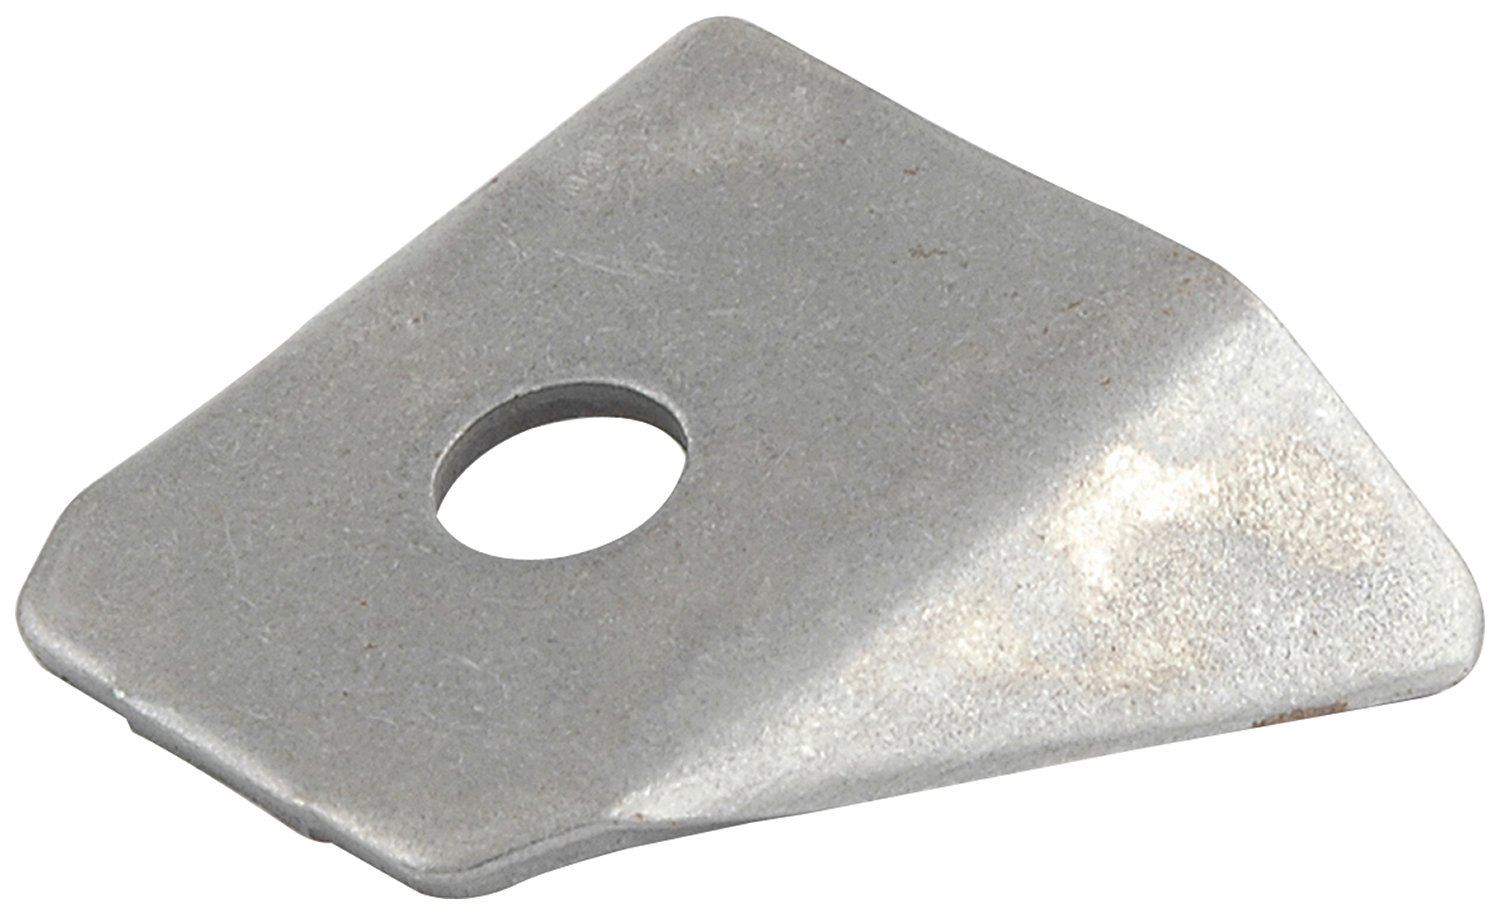 Allstar ALL60024 1-9/16' Tall 0.085' Thick 3/8' Hole 7/8' Center Hole Height Mild Steel Body Brace Chassis Tab for Flat Mount, (Pack of 4) Allstar Performance